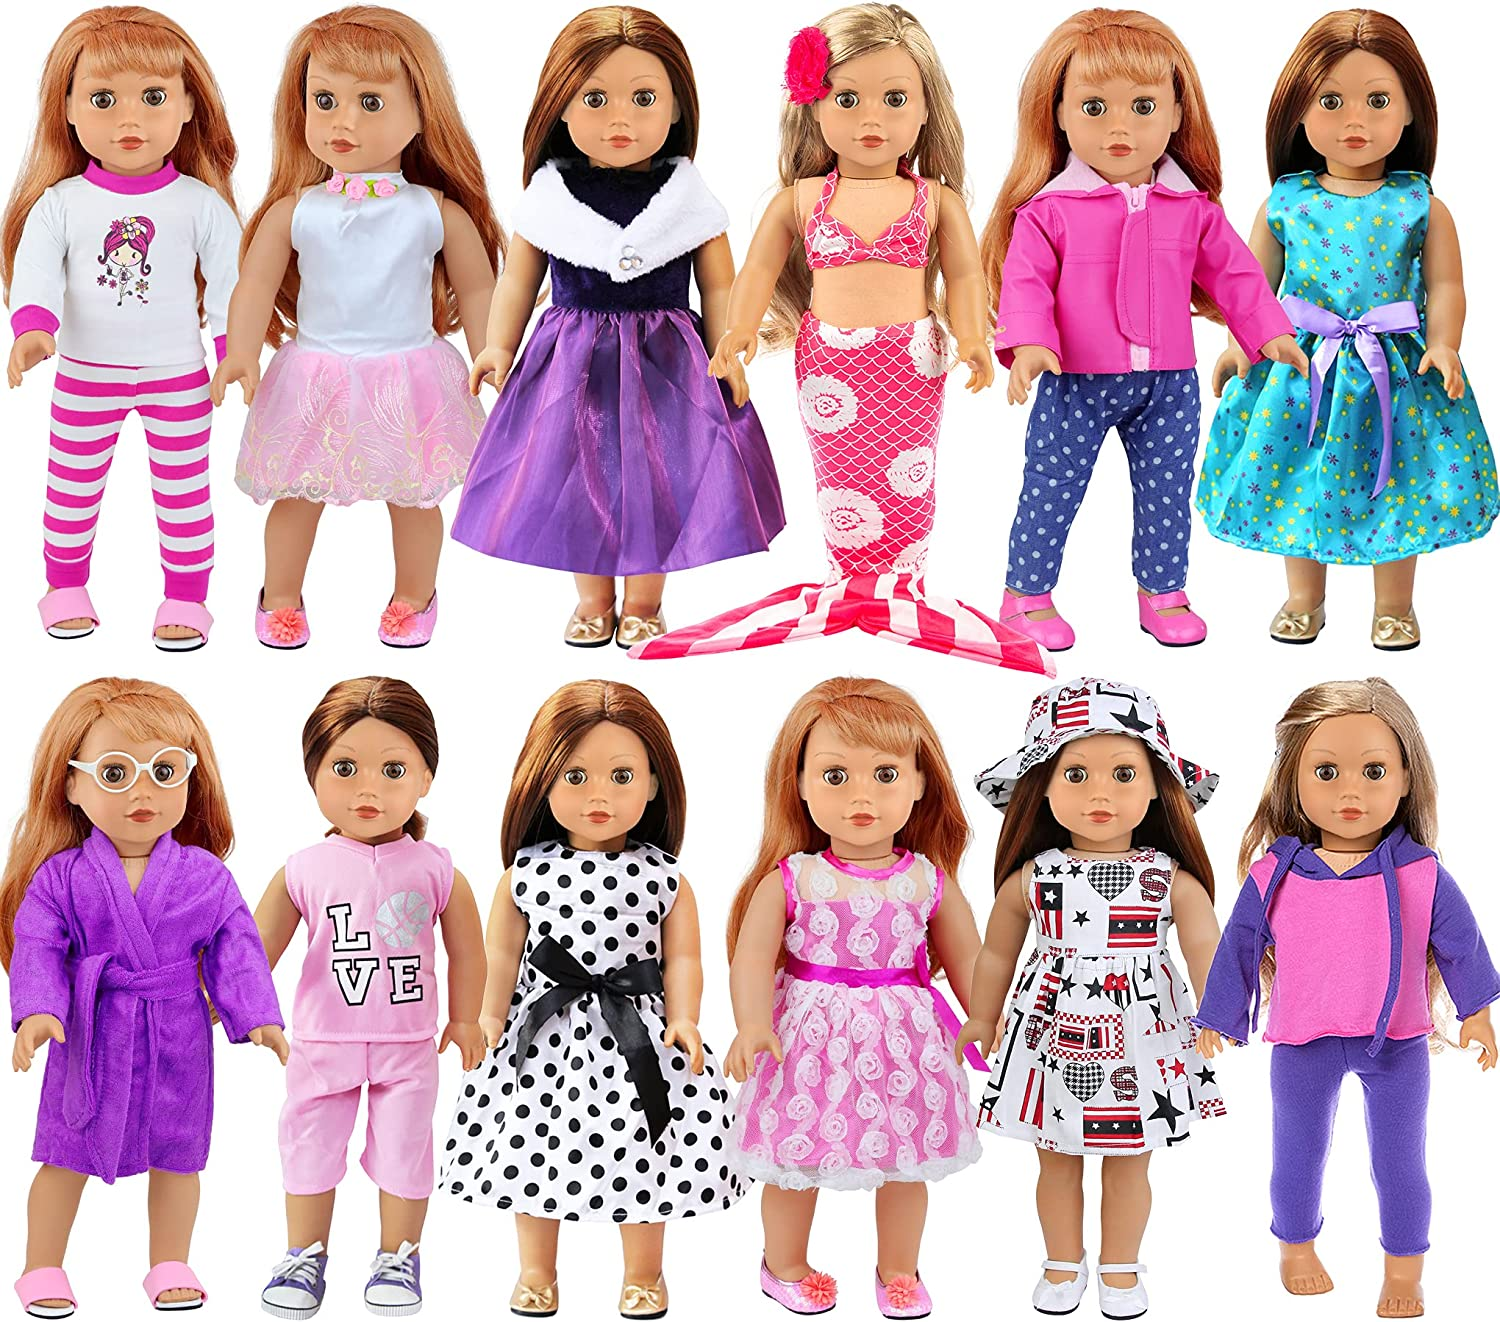 ZITA ELEMENT 12 Sets American 18 Max 44% OFF and Girl Clothes Inch Acce Doll Finally popular brand